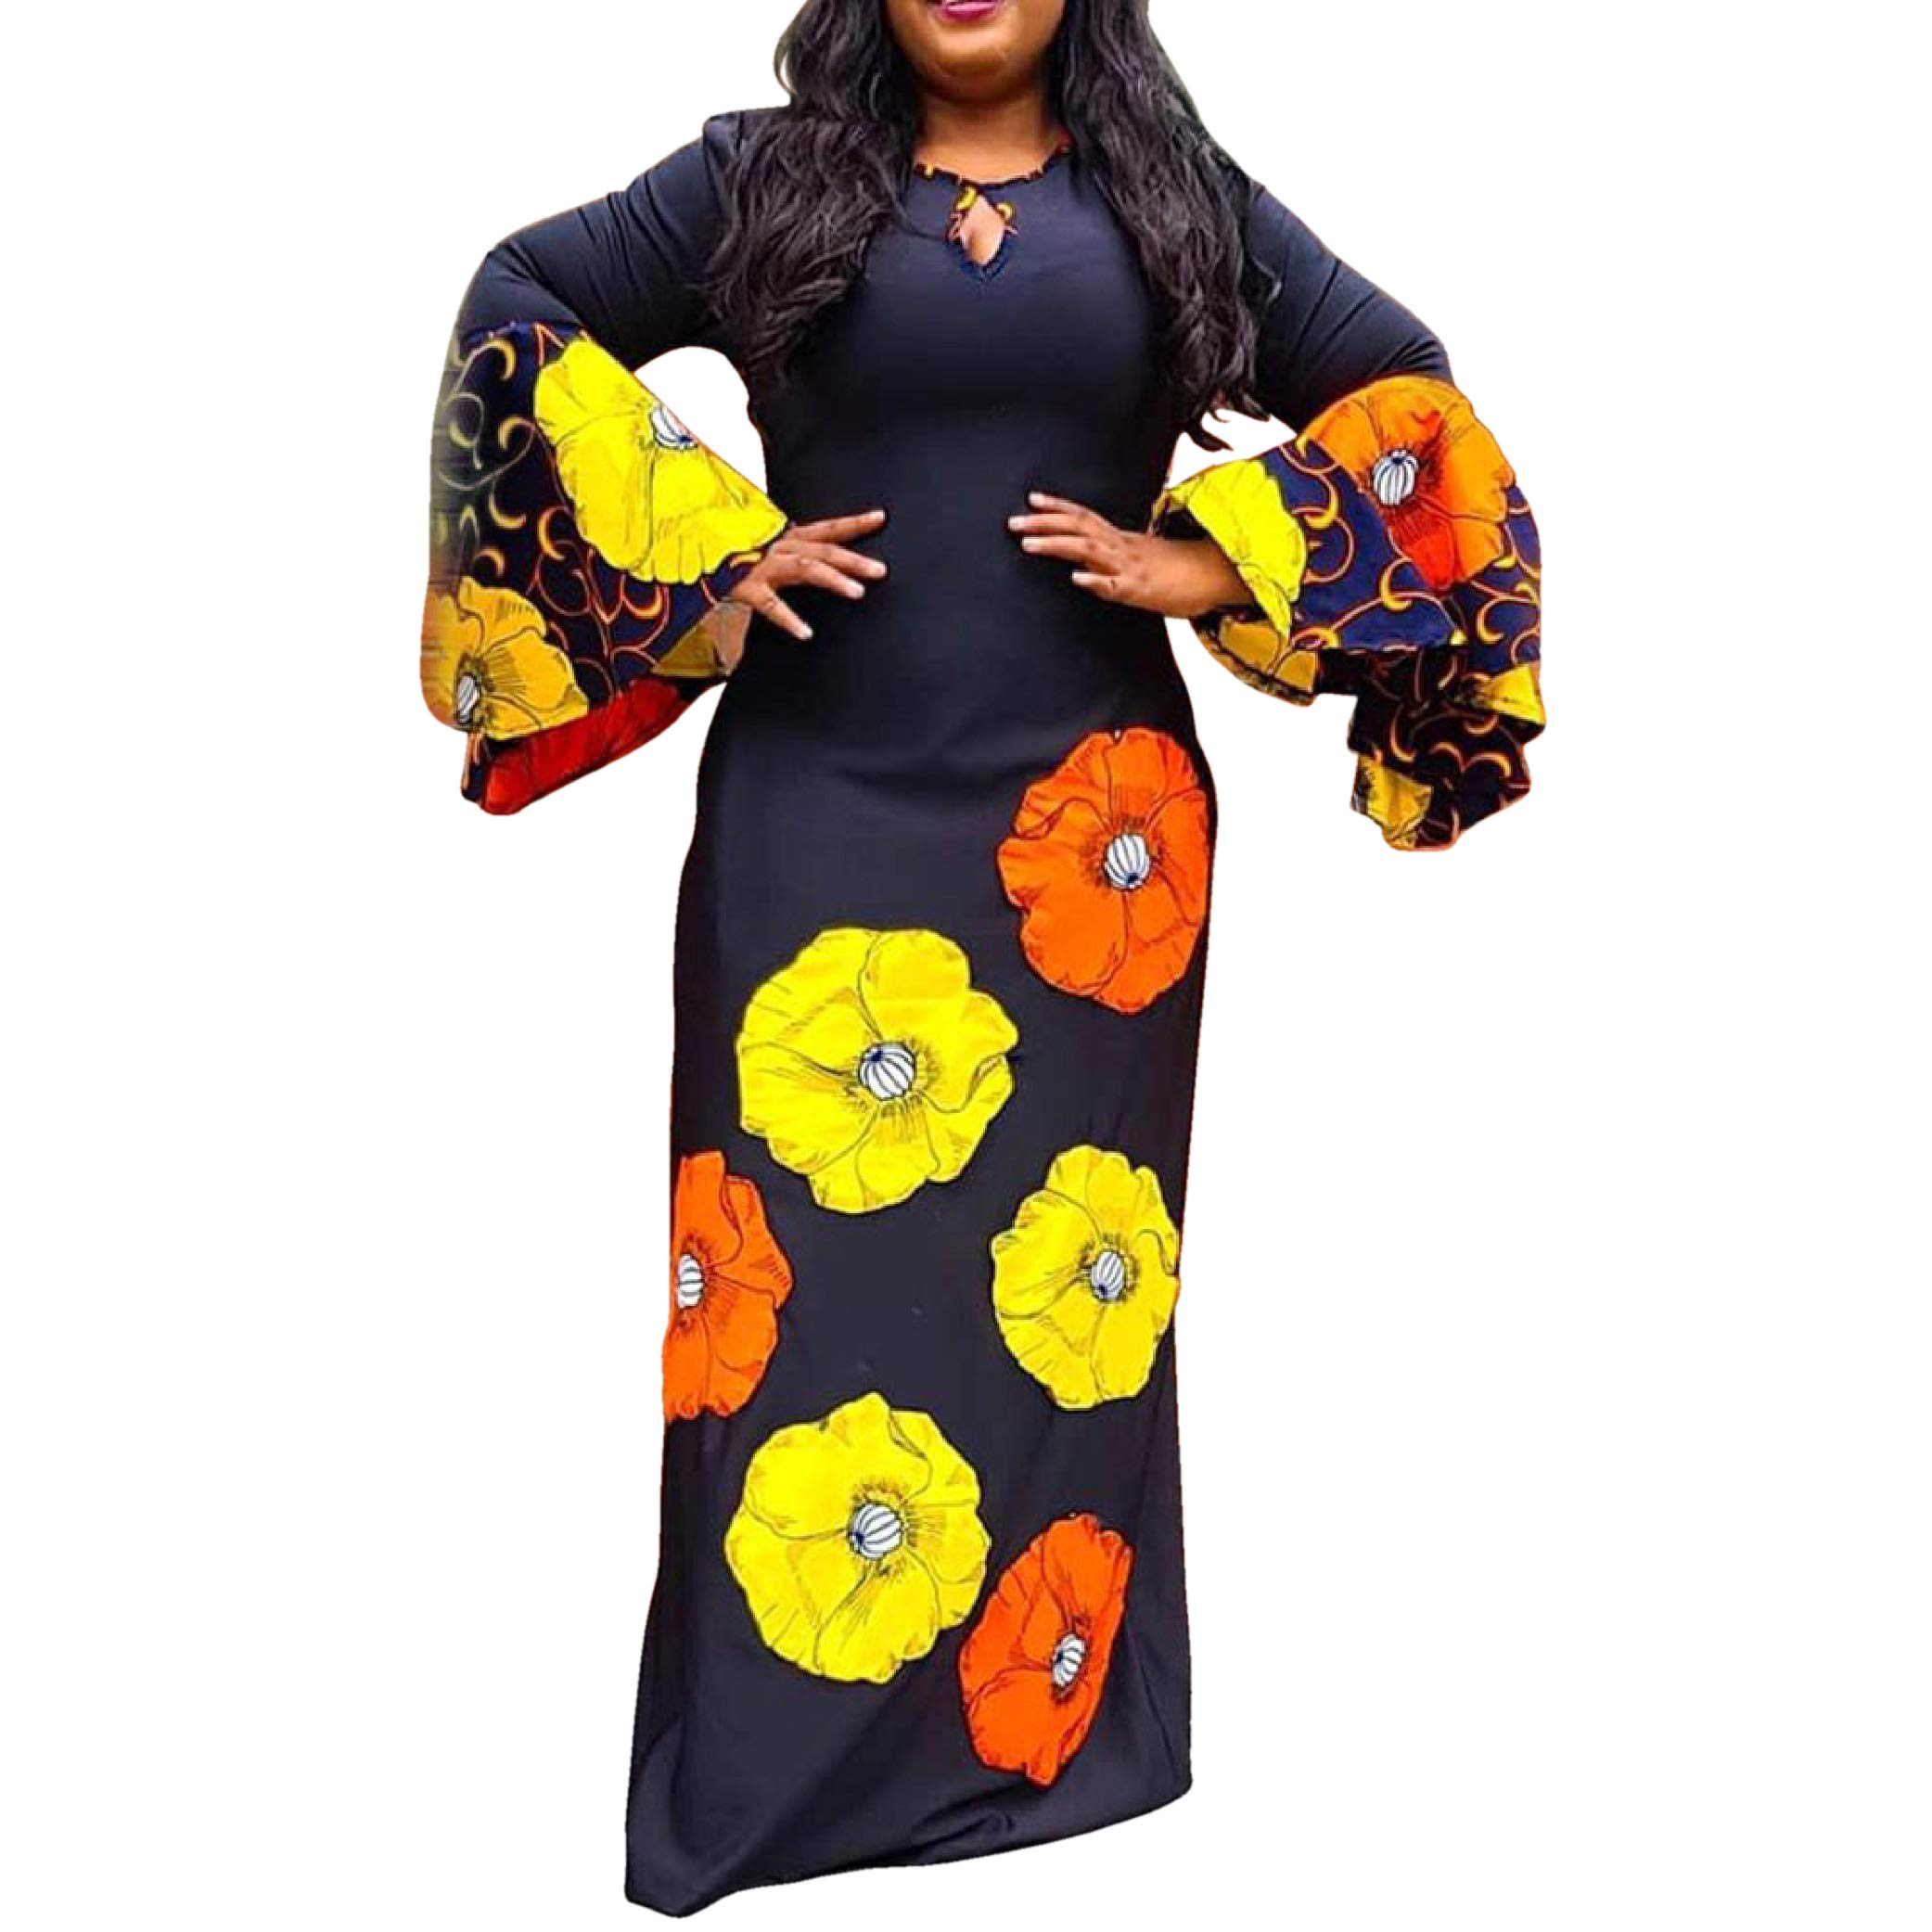 Available at Amazon: VERWIN Round Neck Long Sleeve Print Floral Women's Maxi Dress Pullover Dress Bodycon Dress